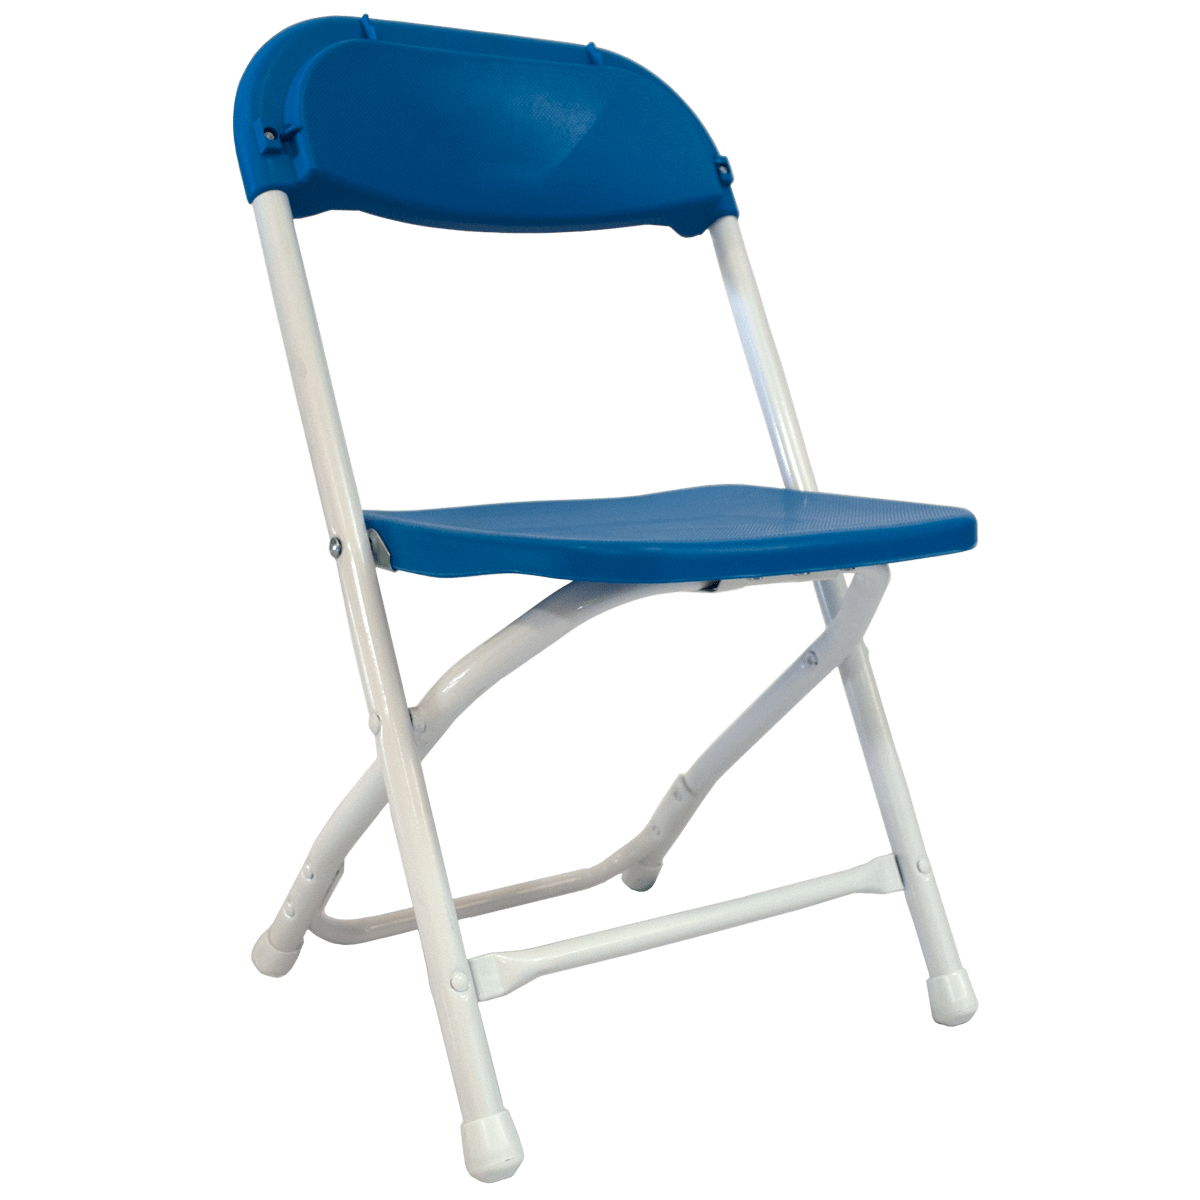 Blue Folding Chairs Child 39s Chairs Blue Celebrations Party Rentals